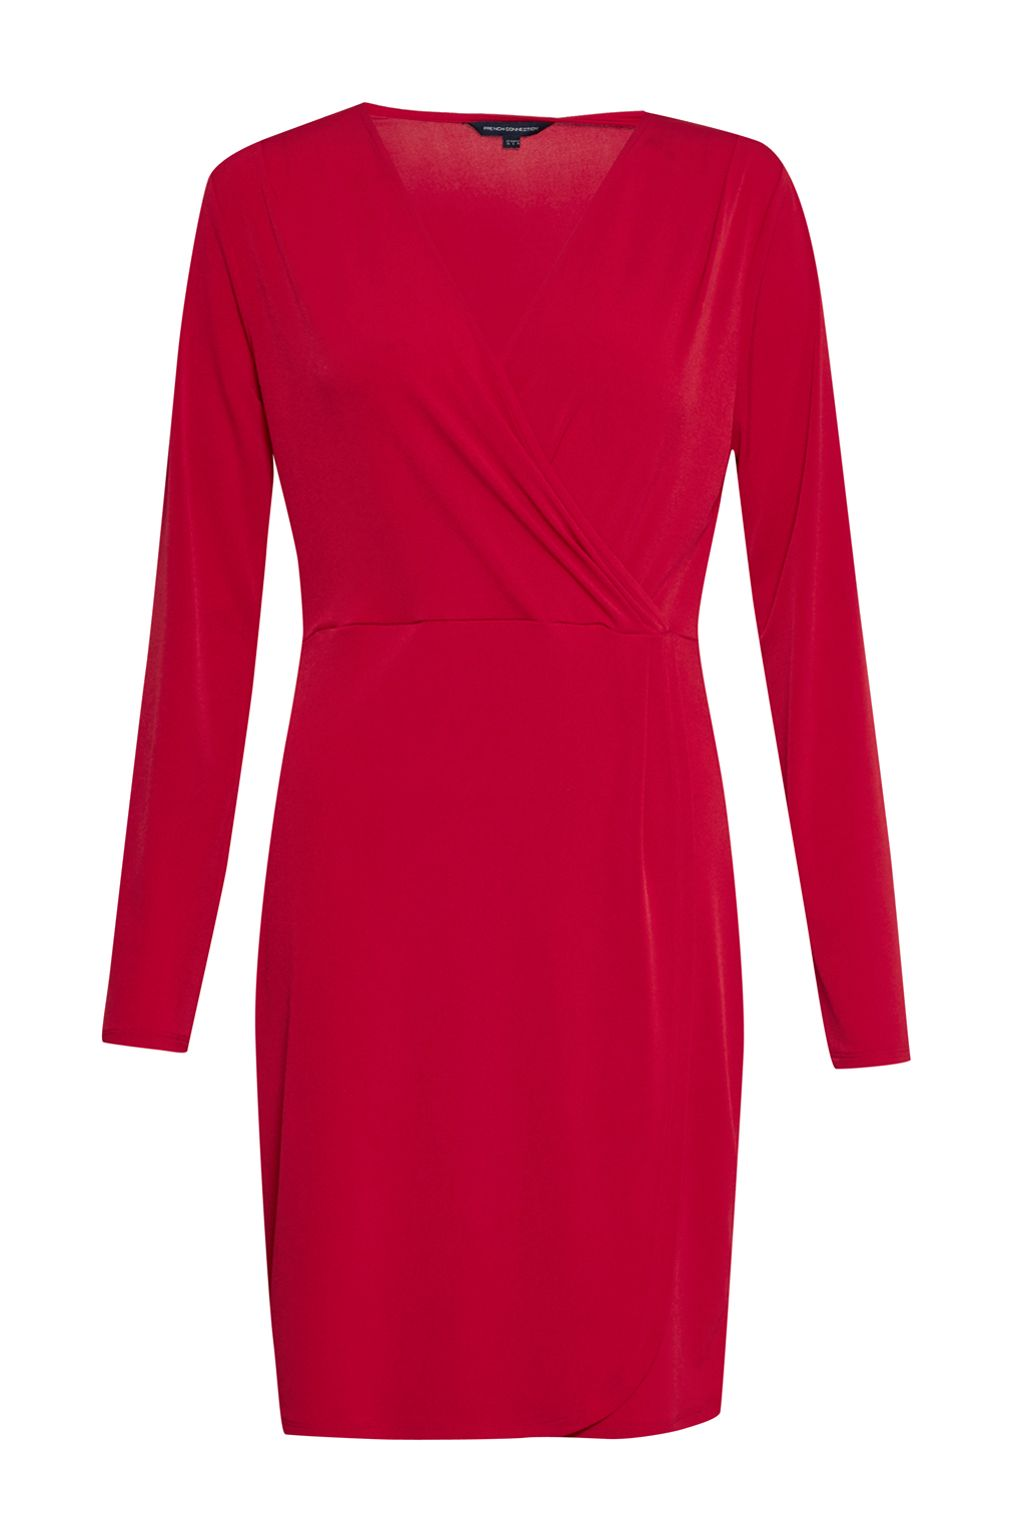 French Connection Slinky Wrap Dress, Red